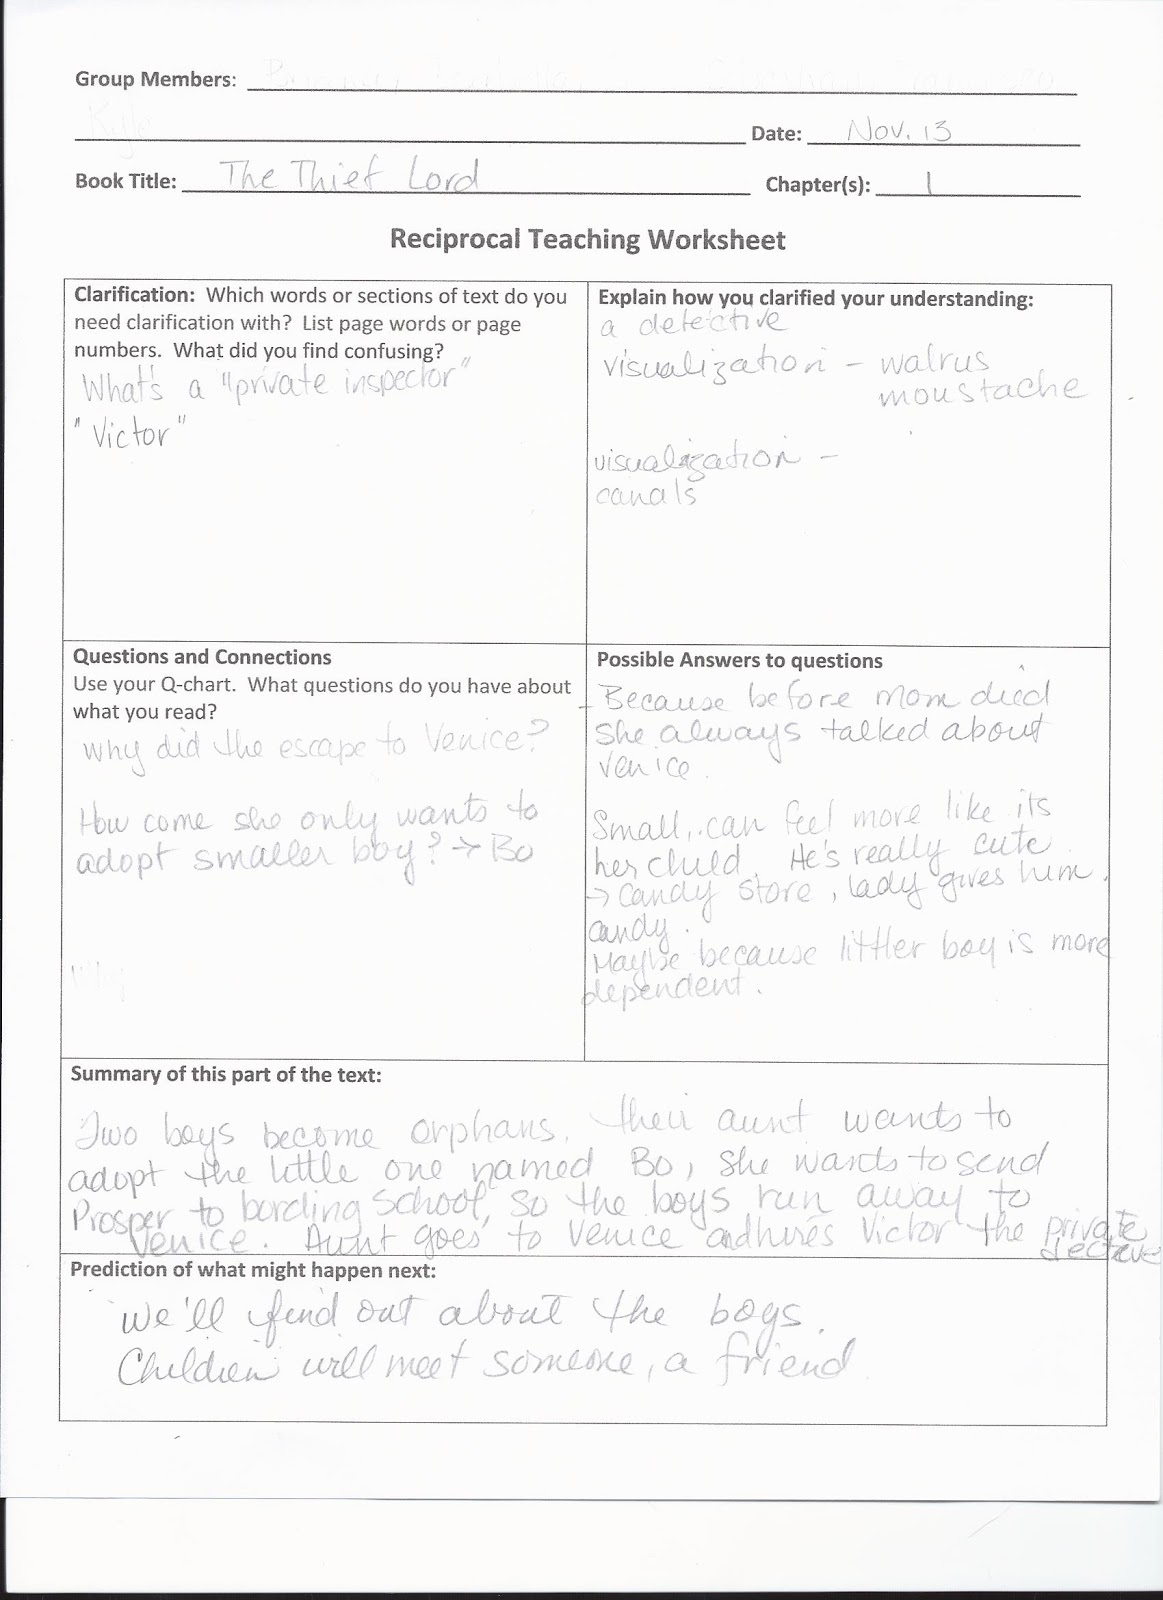 Worksheets Reciprocal Teaching Worksheet making shift happen reciprocal teaching here are some samples from my class if you click on them they will appear larger in a new window